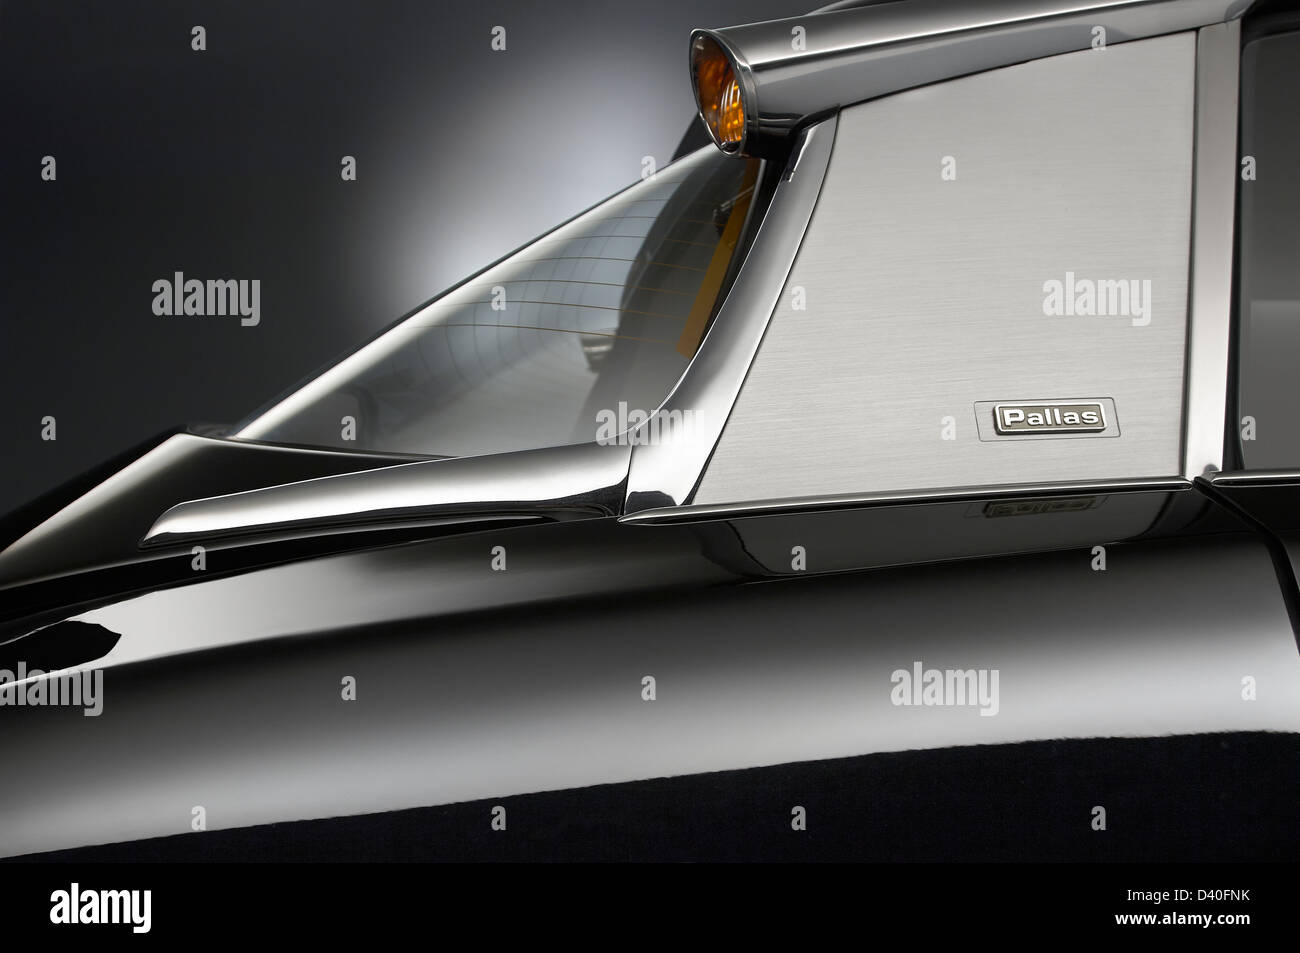 Citroen DS Pallas 21 23 Detail - Stock Image